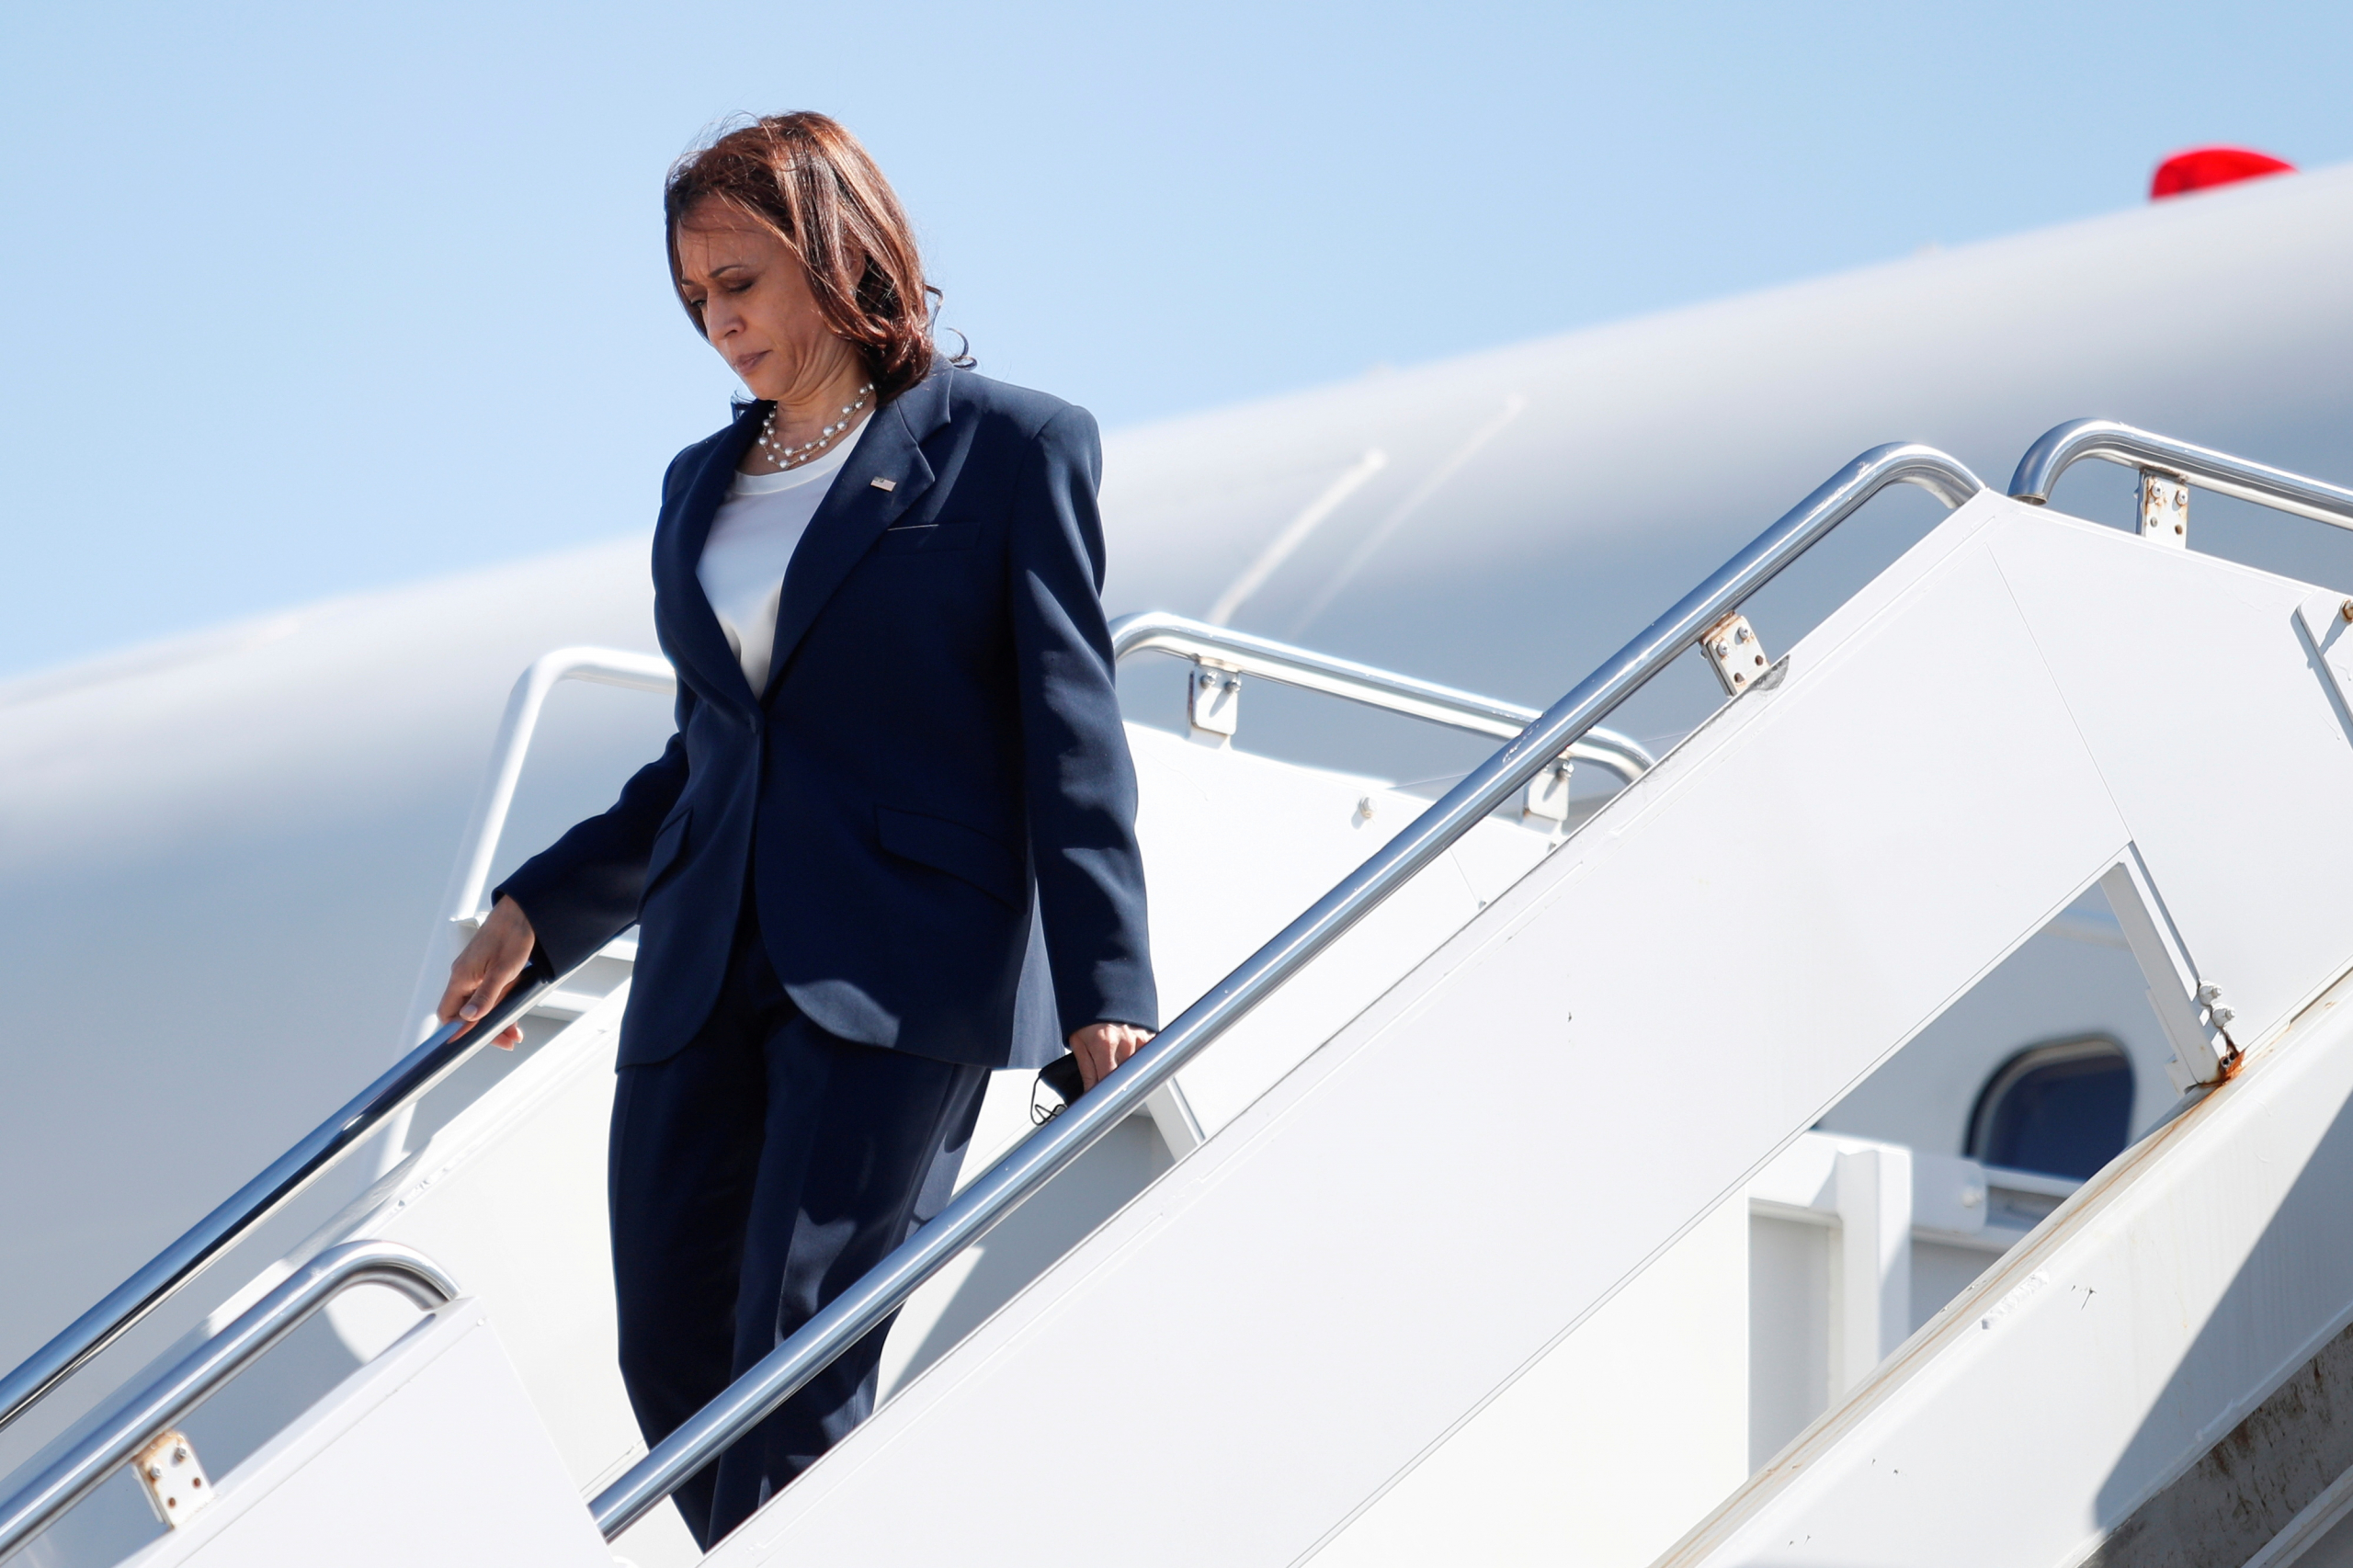 Connecticut Today with Paul Pacelli: A Look At Vice President Kamala Harris's Recent Remarks